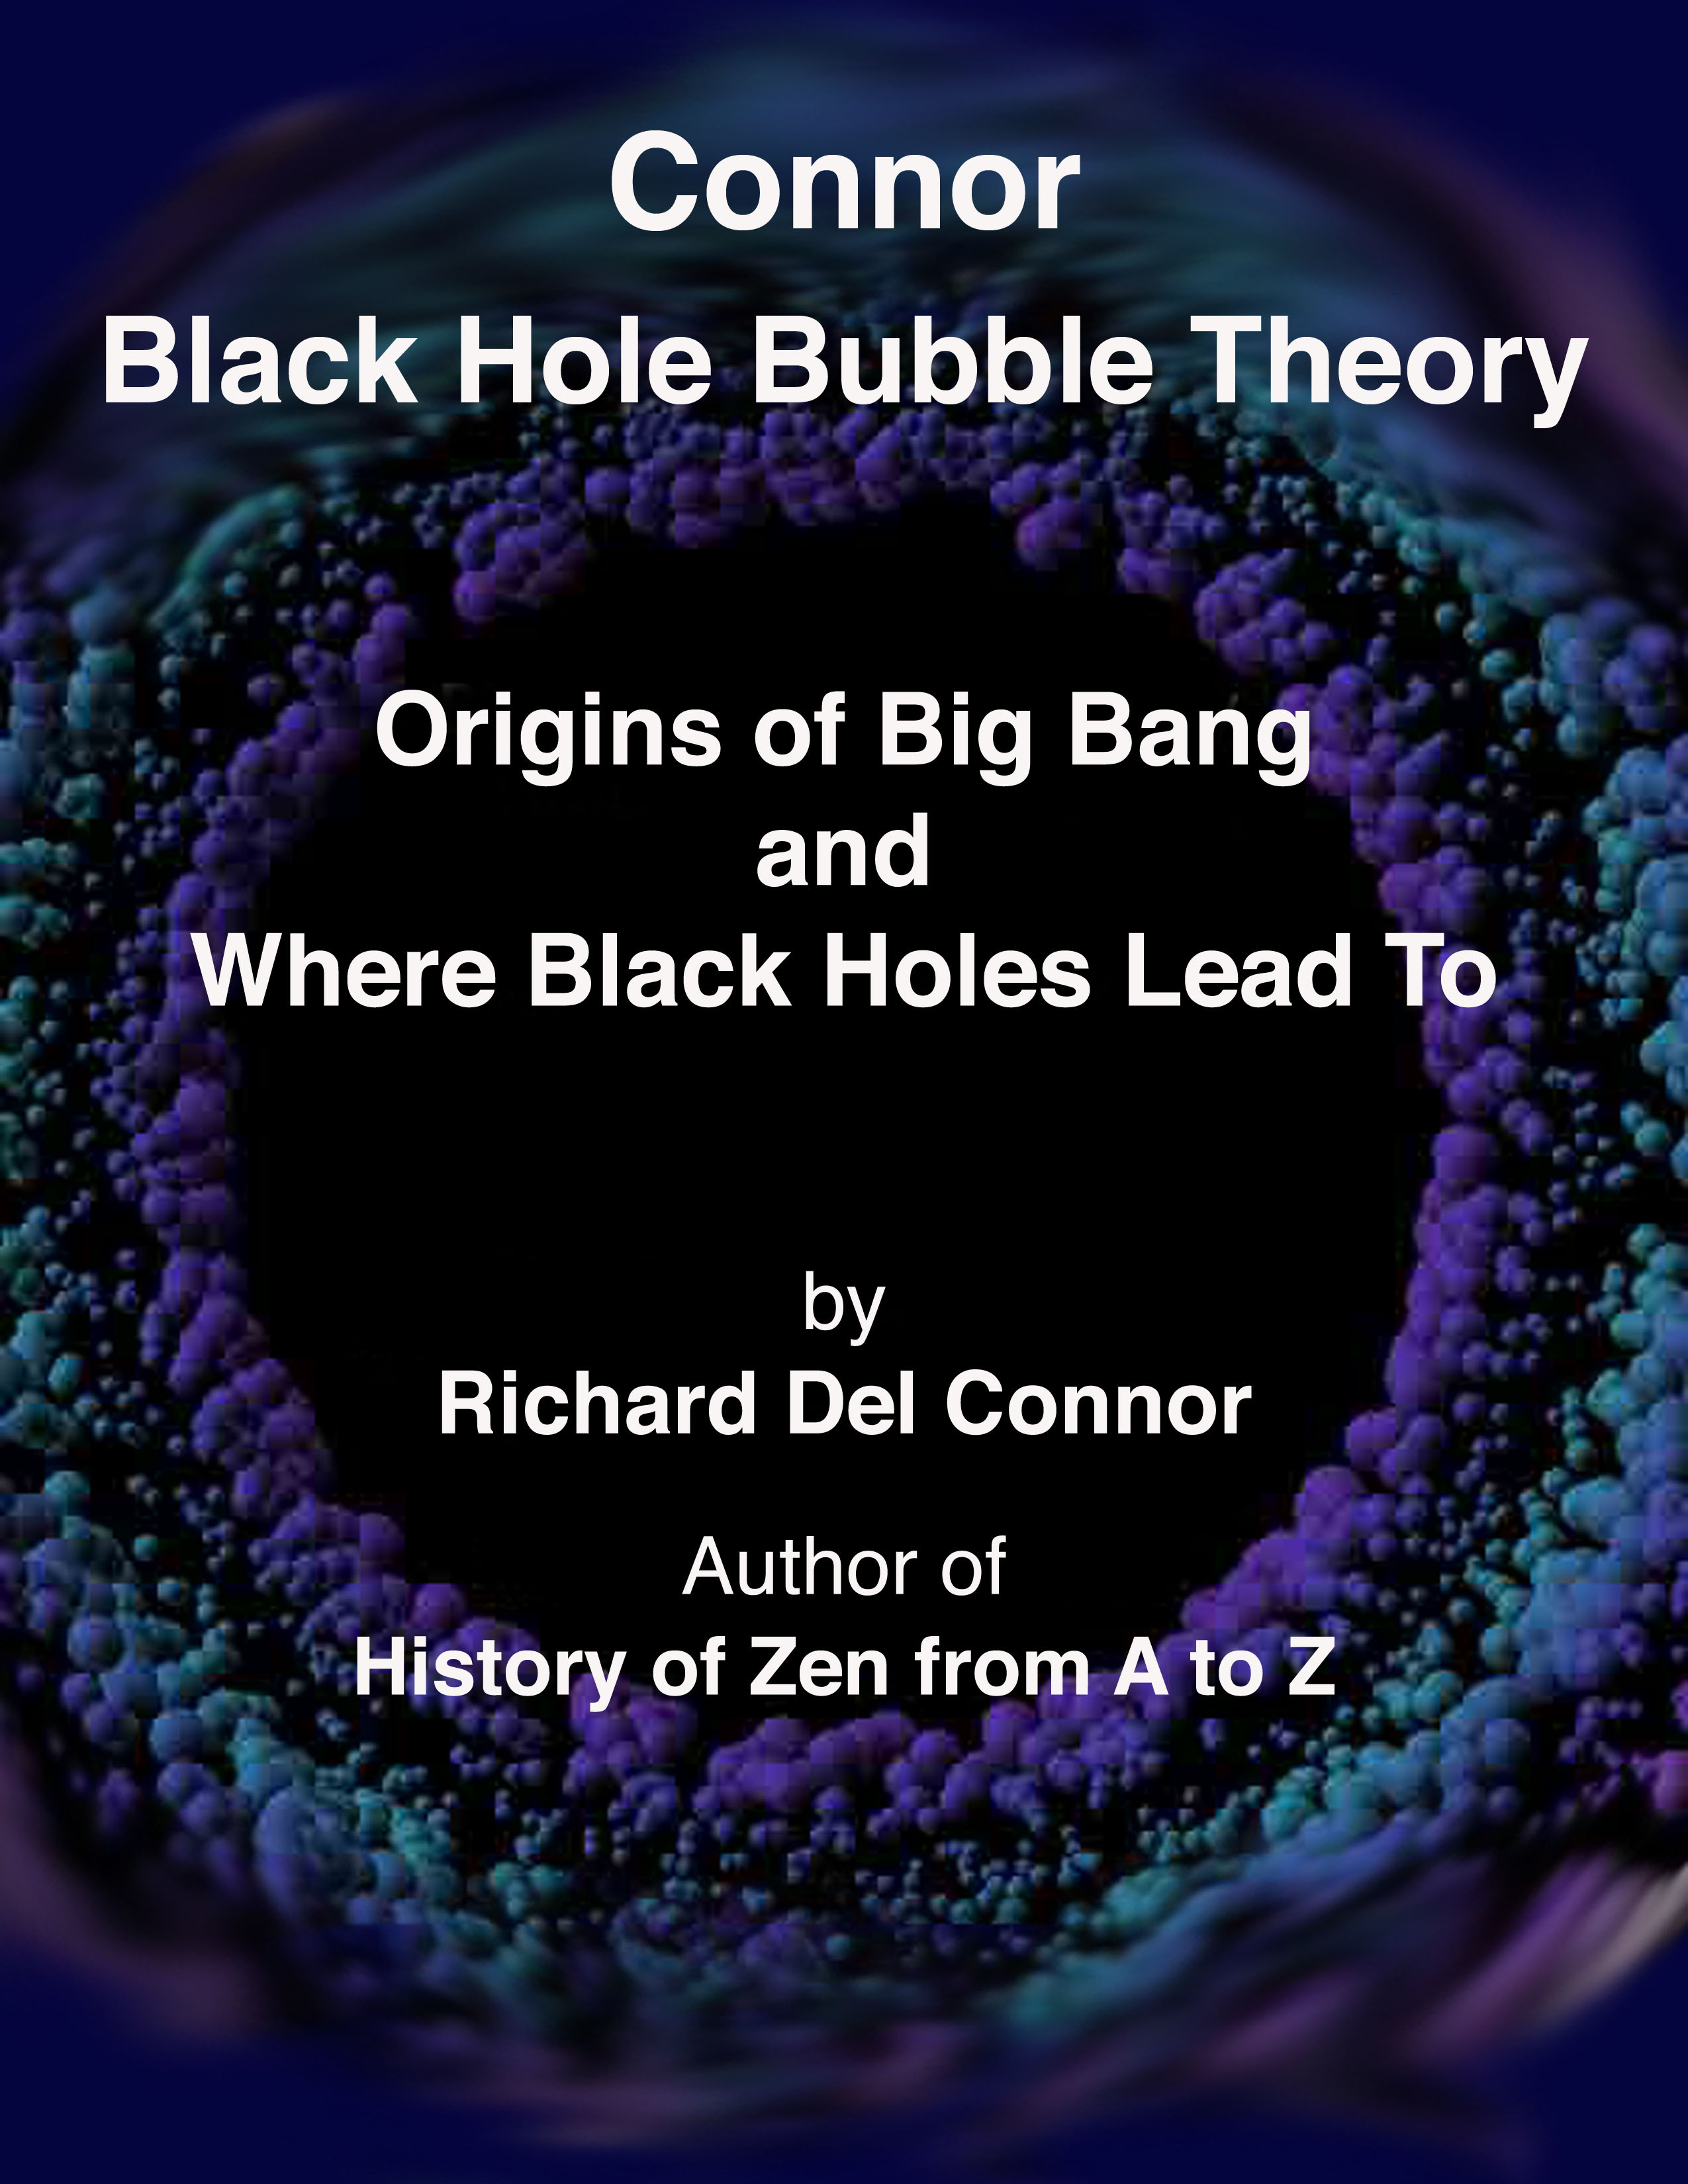 Connor Black Hole Bubble Theory: Origins of Big Bang and Where Black Holes Lead To